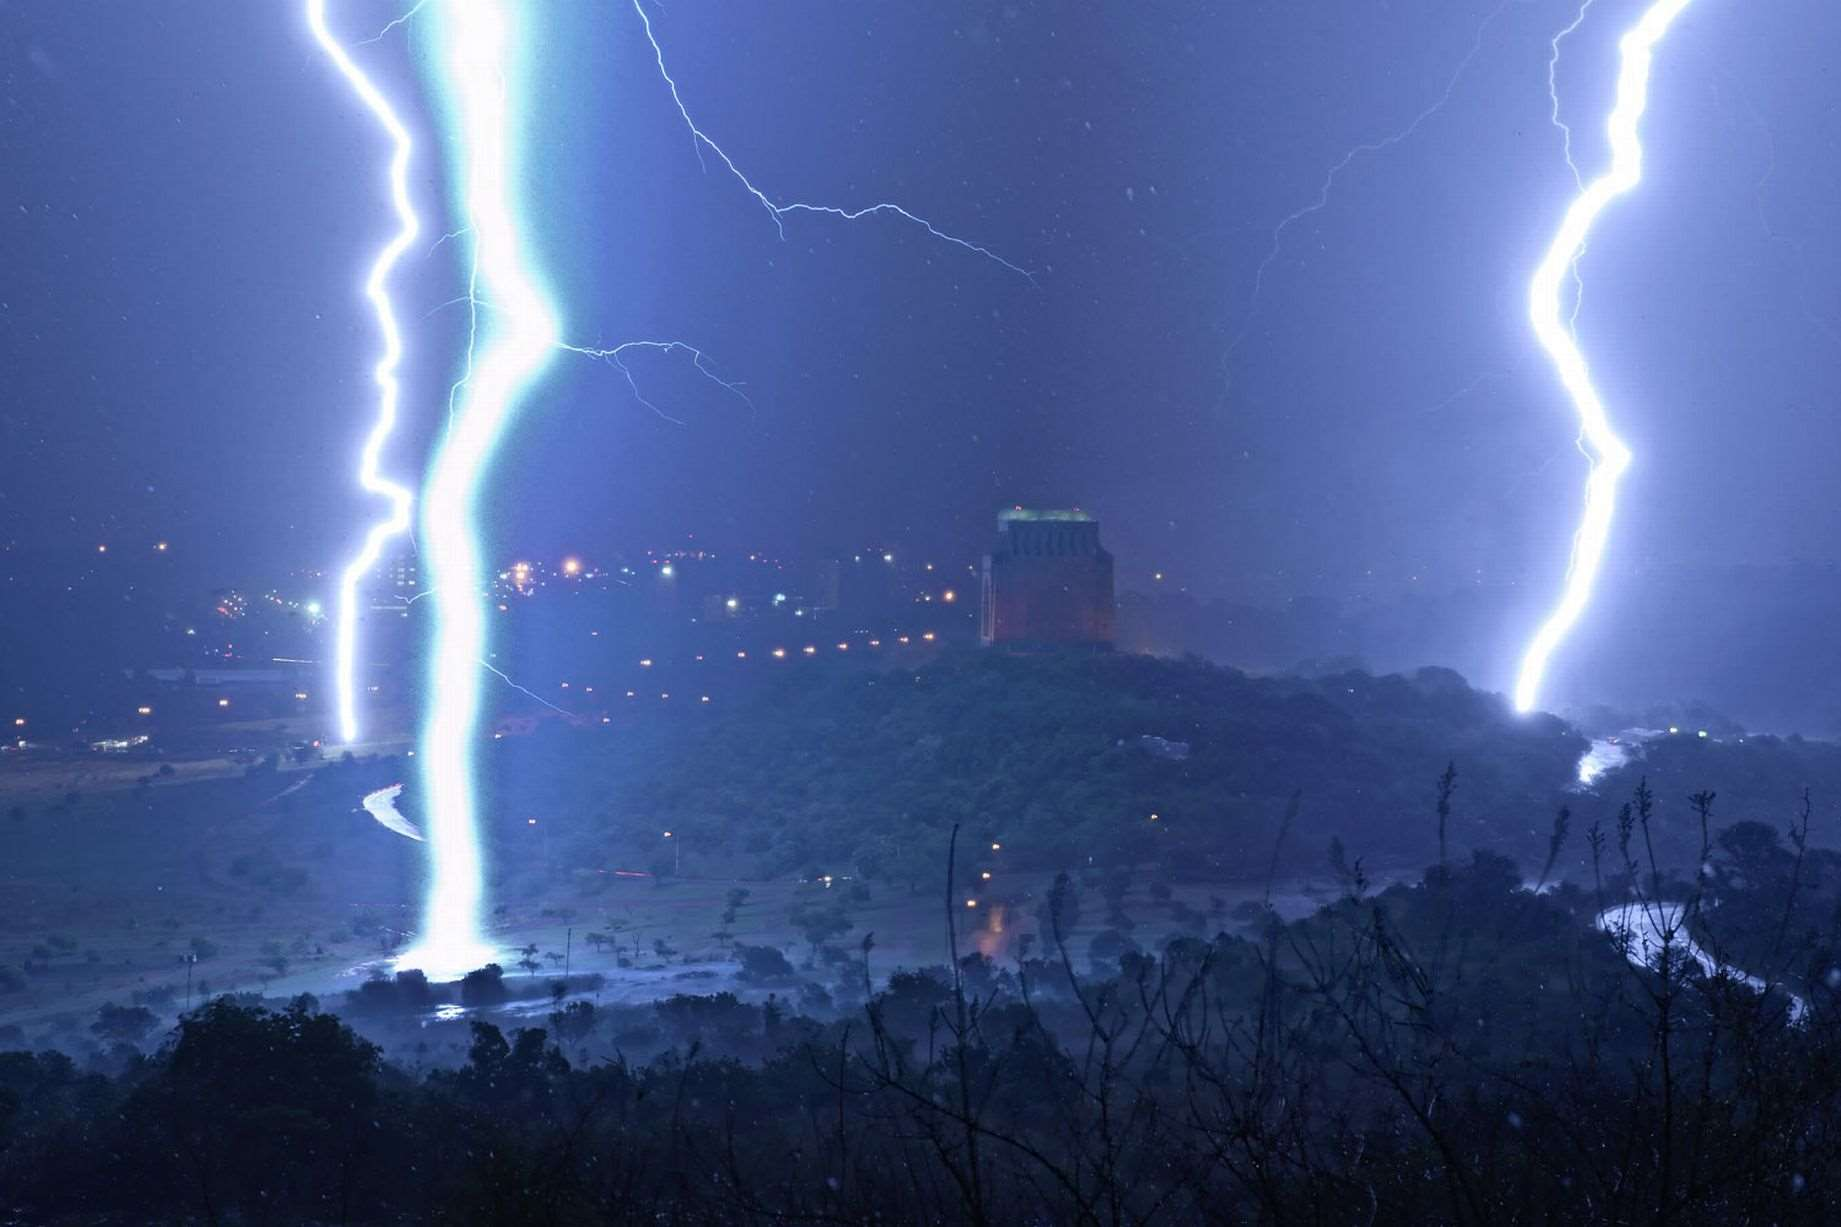 Monumental Chaos- The moment when 3 massive lightning strikes hit the earth within 15 seconds at Voortrekker Monument just outside Pretoria, South Africa